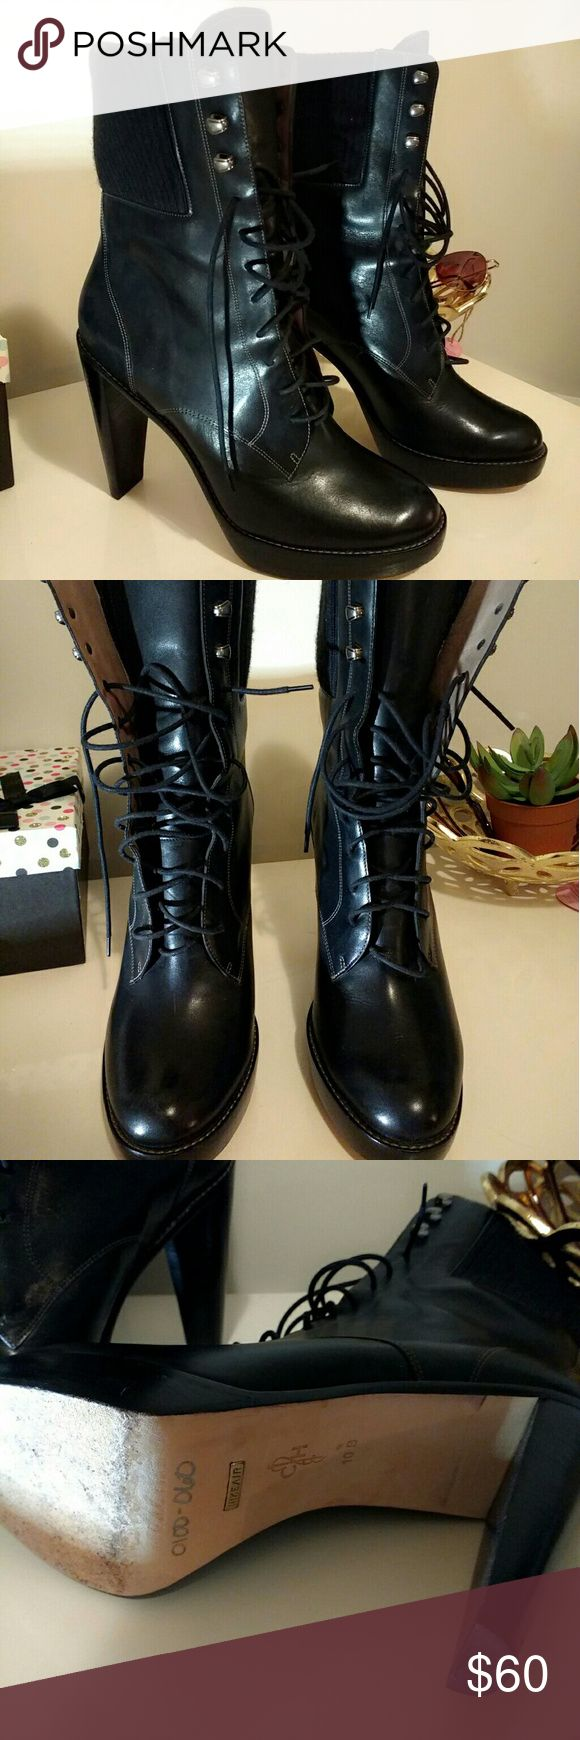 Cole Haan Boots. Size 10b Cole Haan boots with high heel. Very comfortable.  Size 10 B Cole Haan Shoes Lace Up Boots